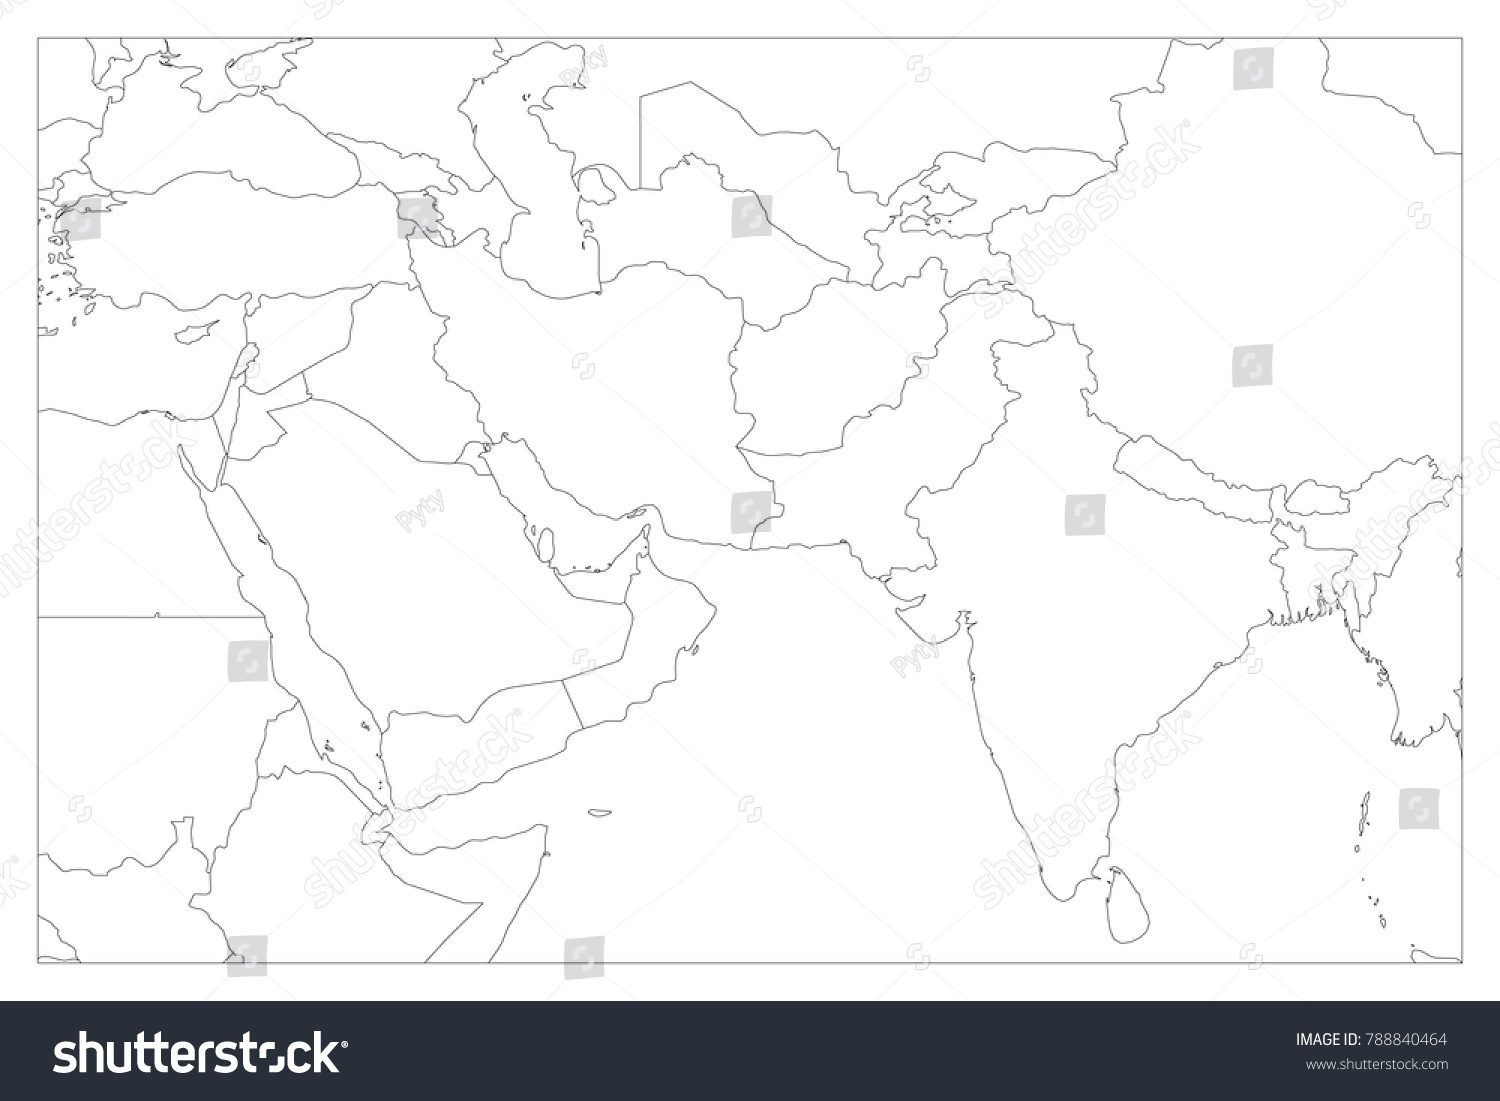 Political Map South Asia Middle East Stock Vector Royalty Free